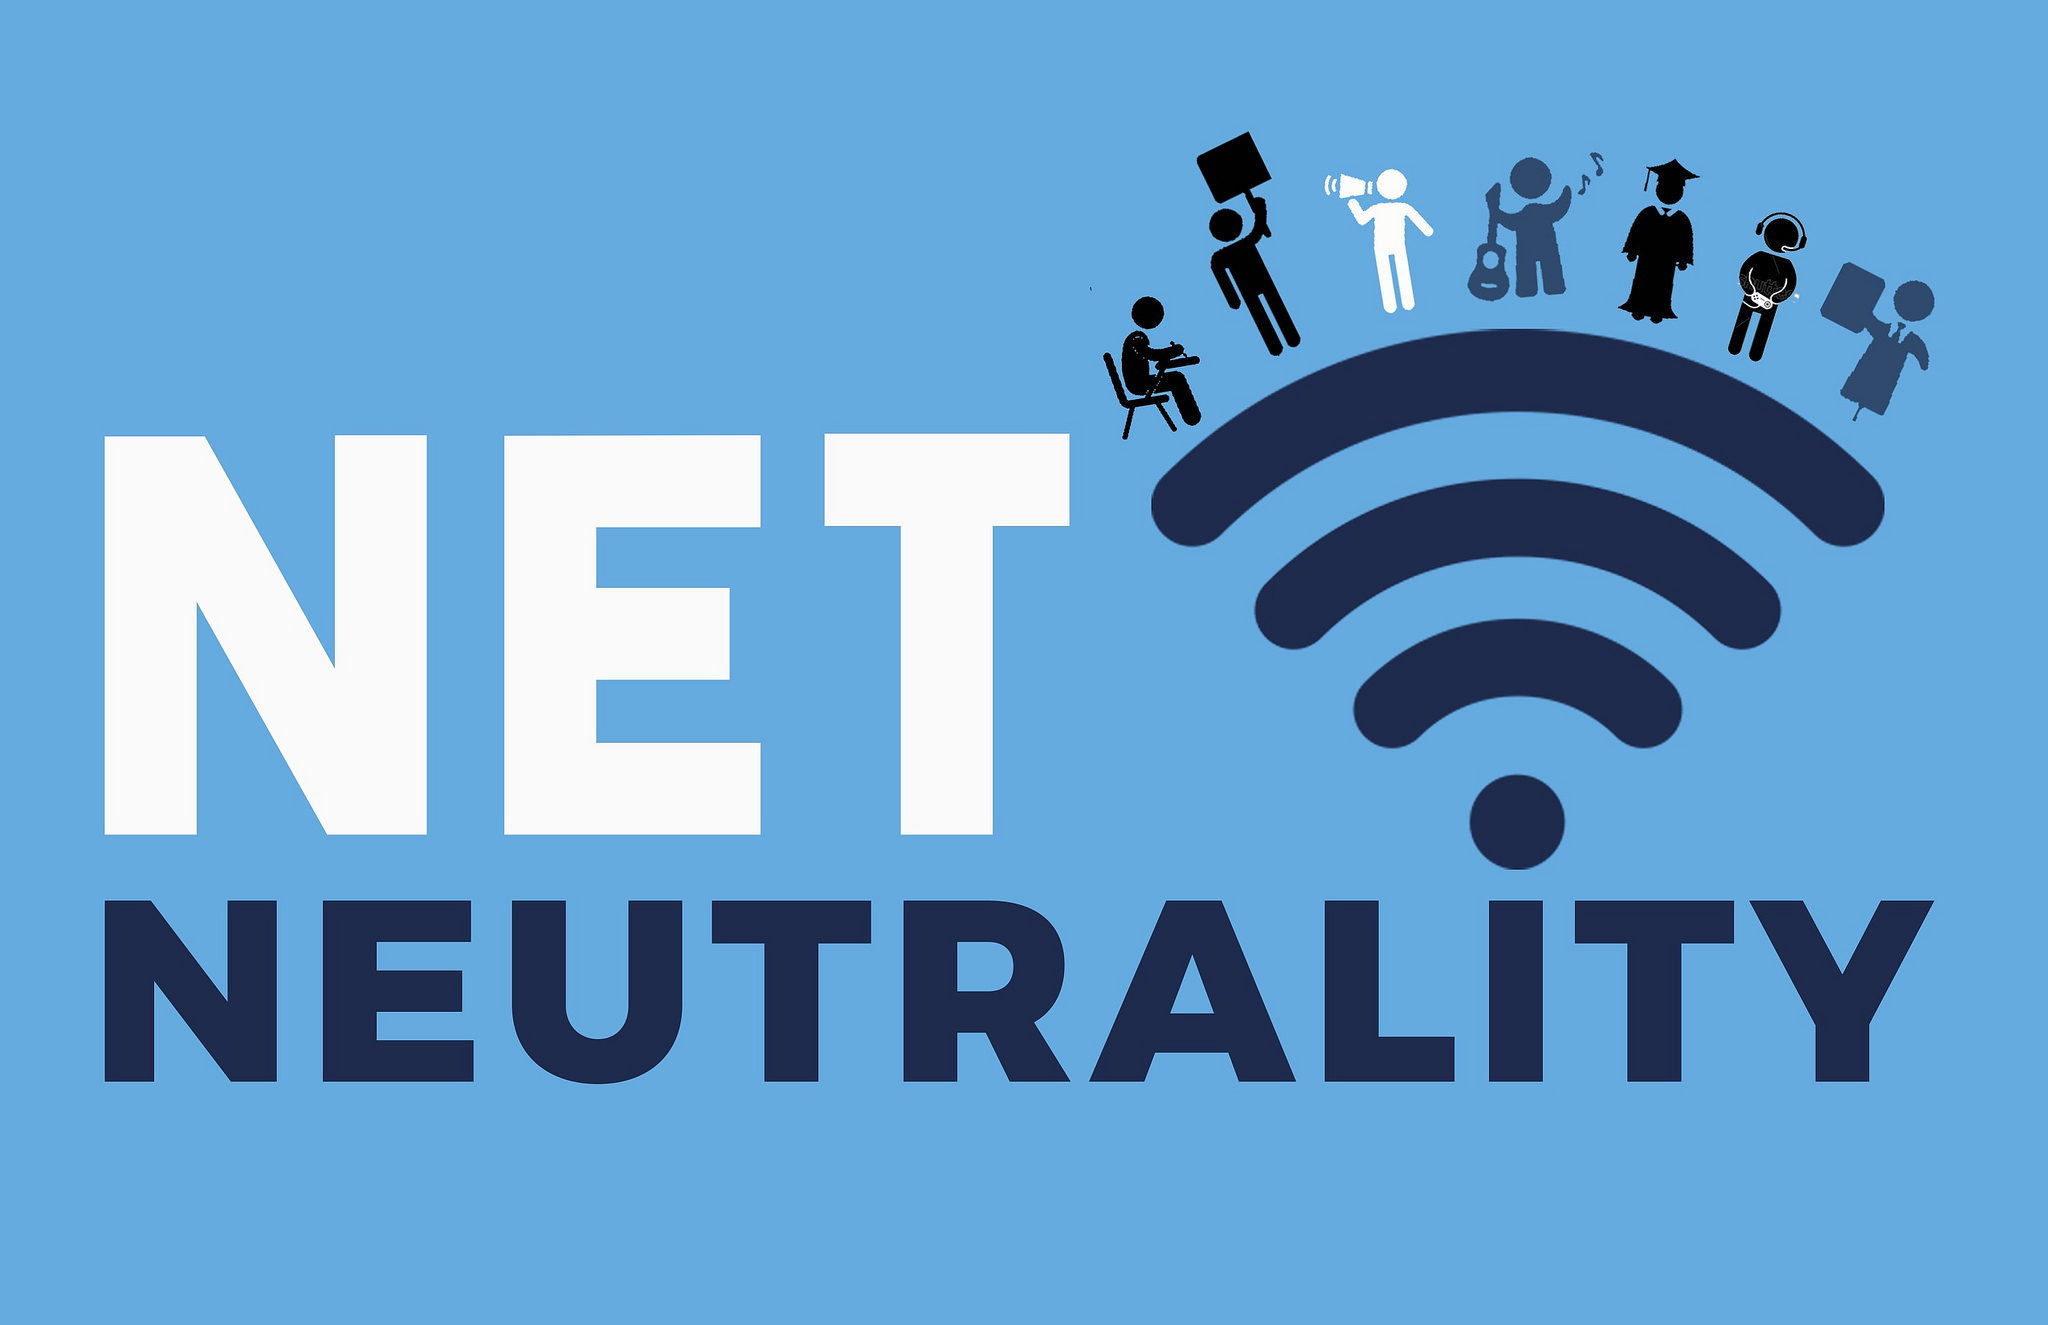 Save Net Neutrality banner